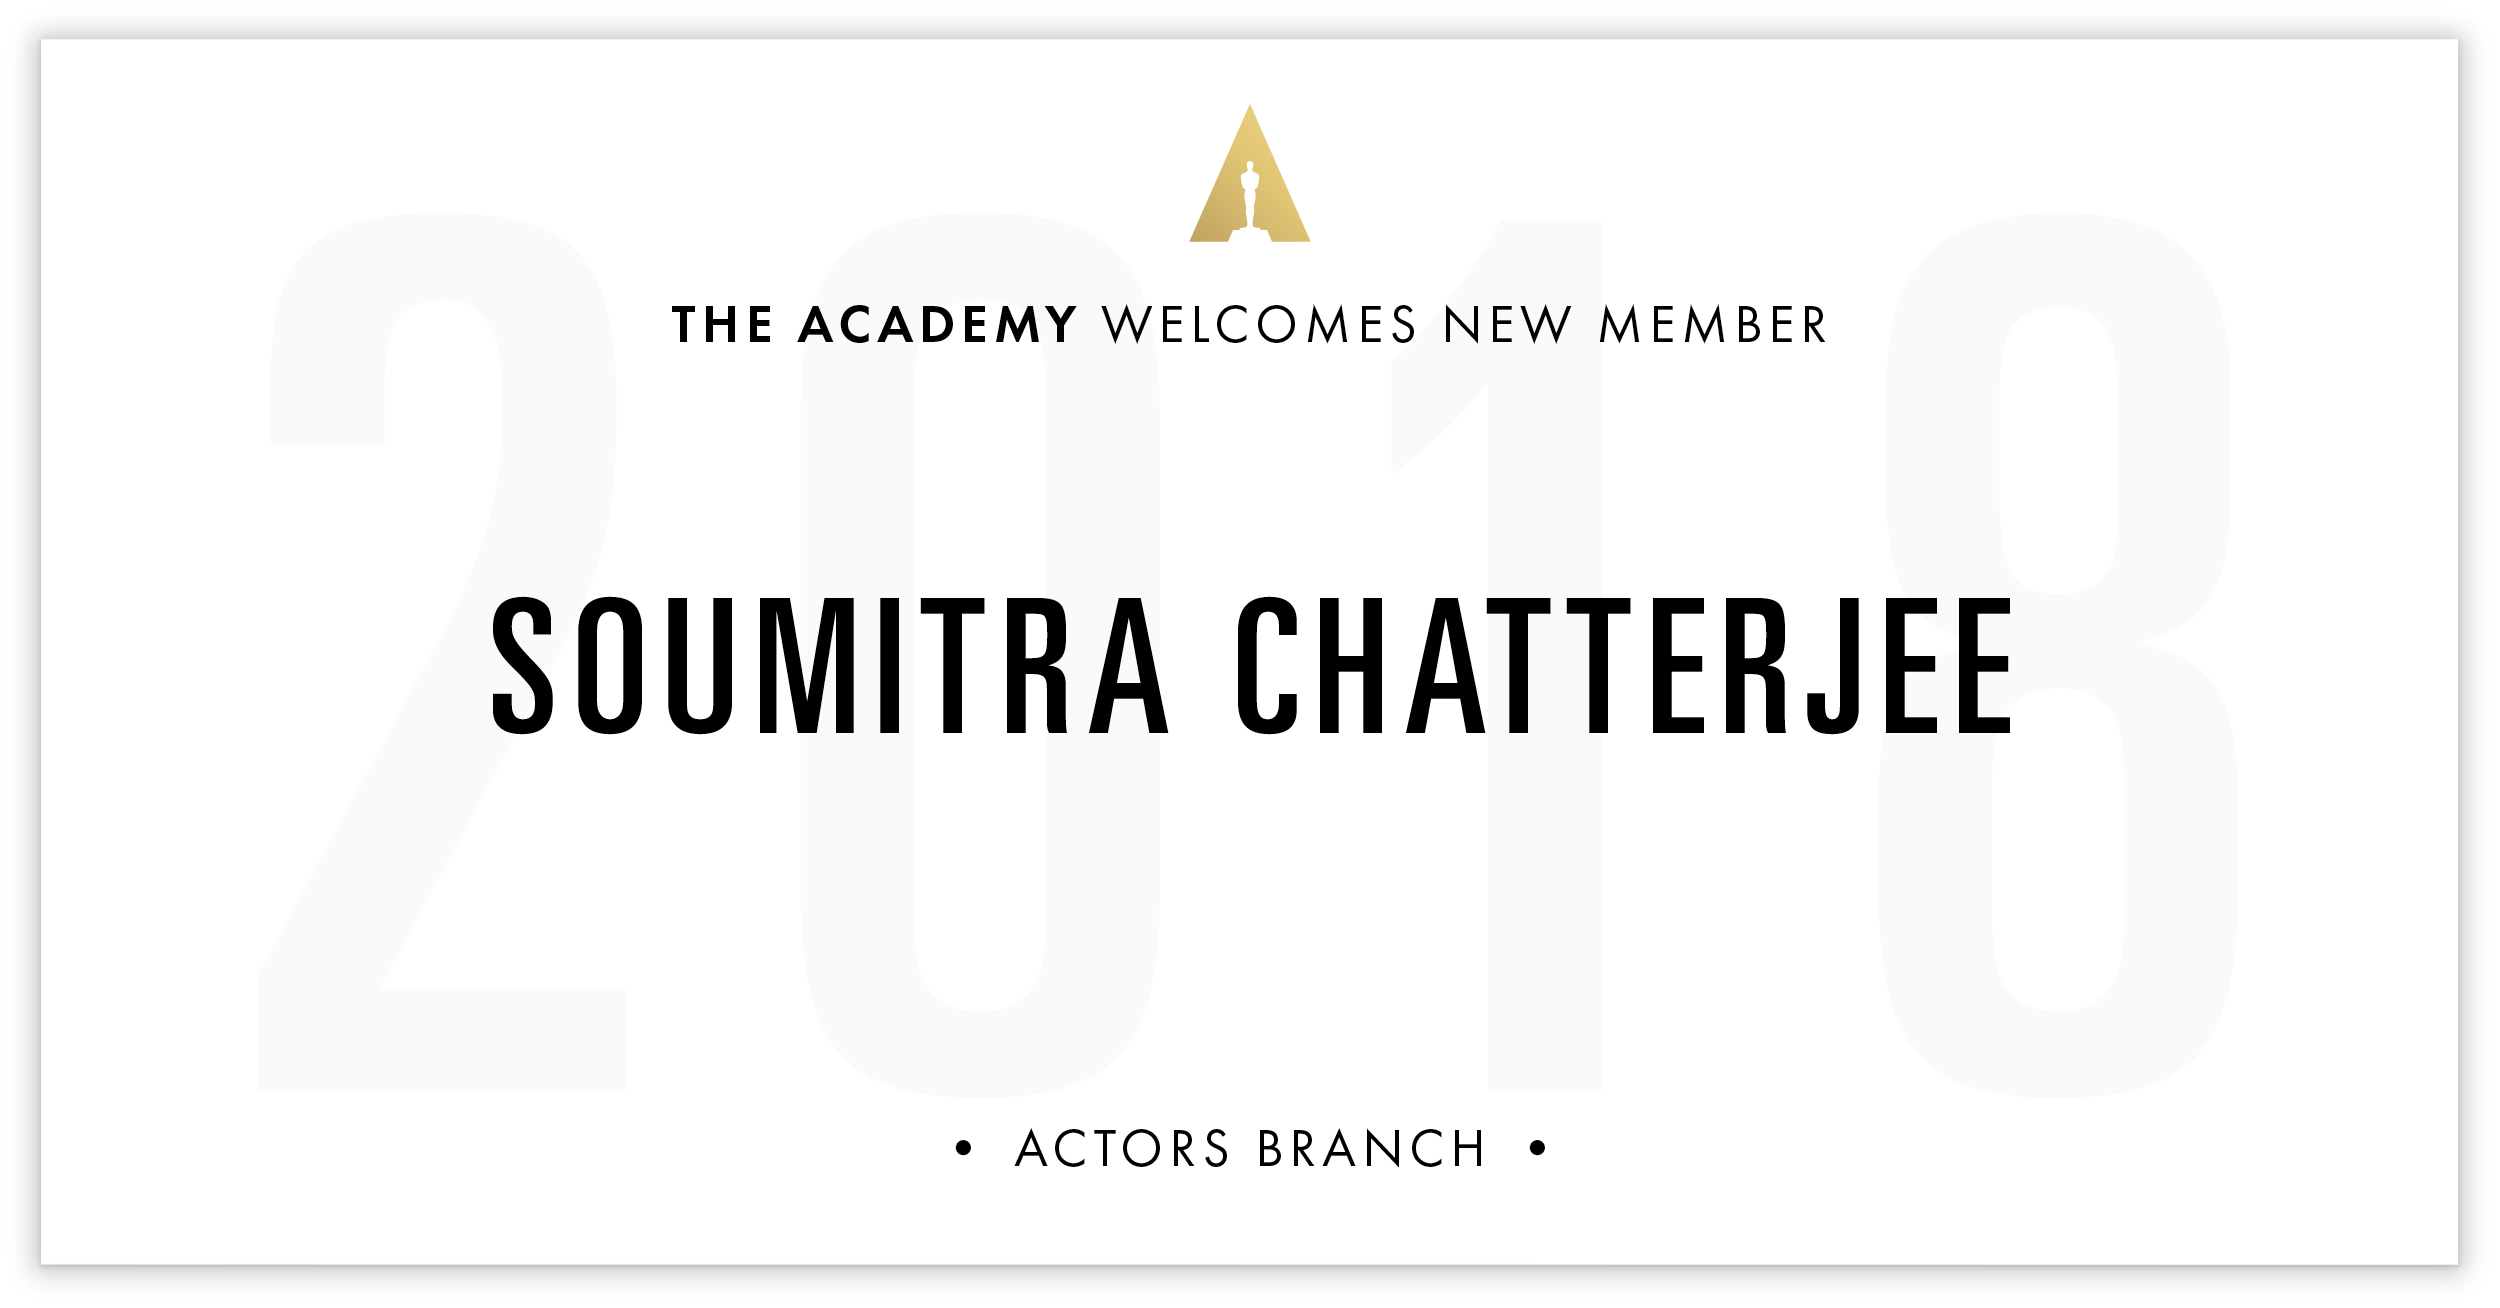 Soumitra Chatterjee is invited!